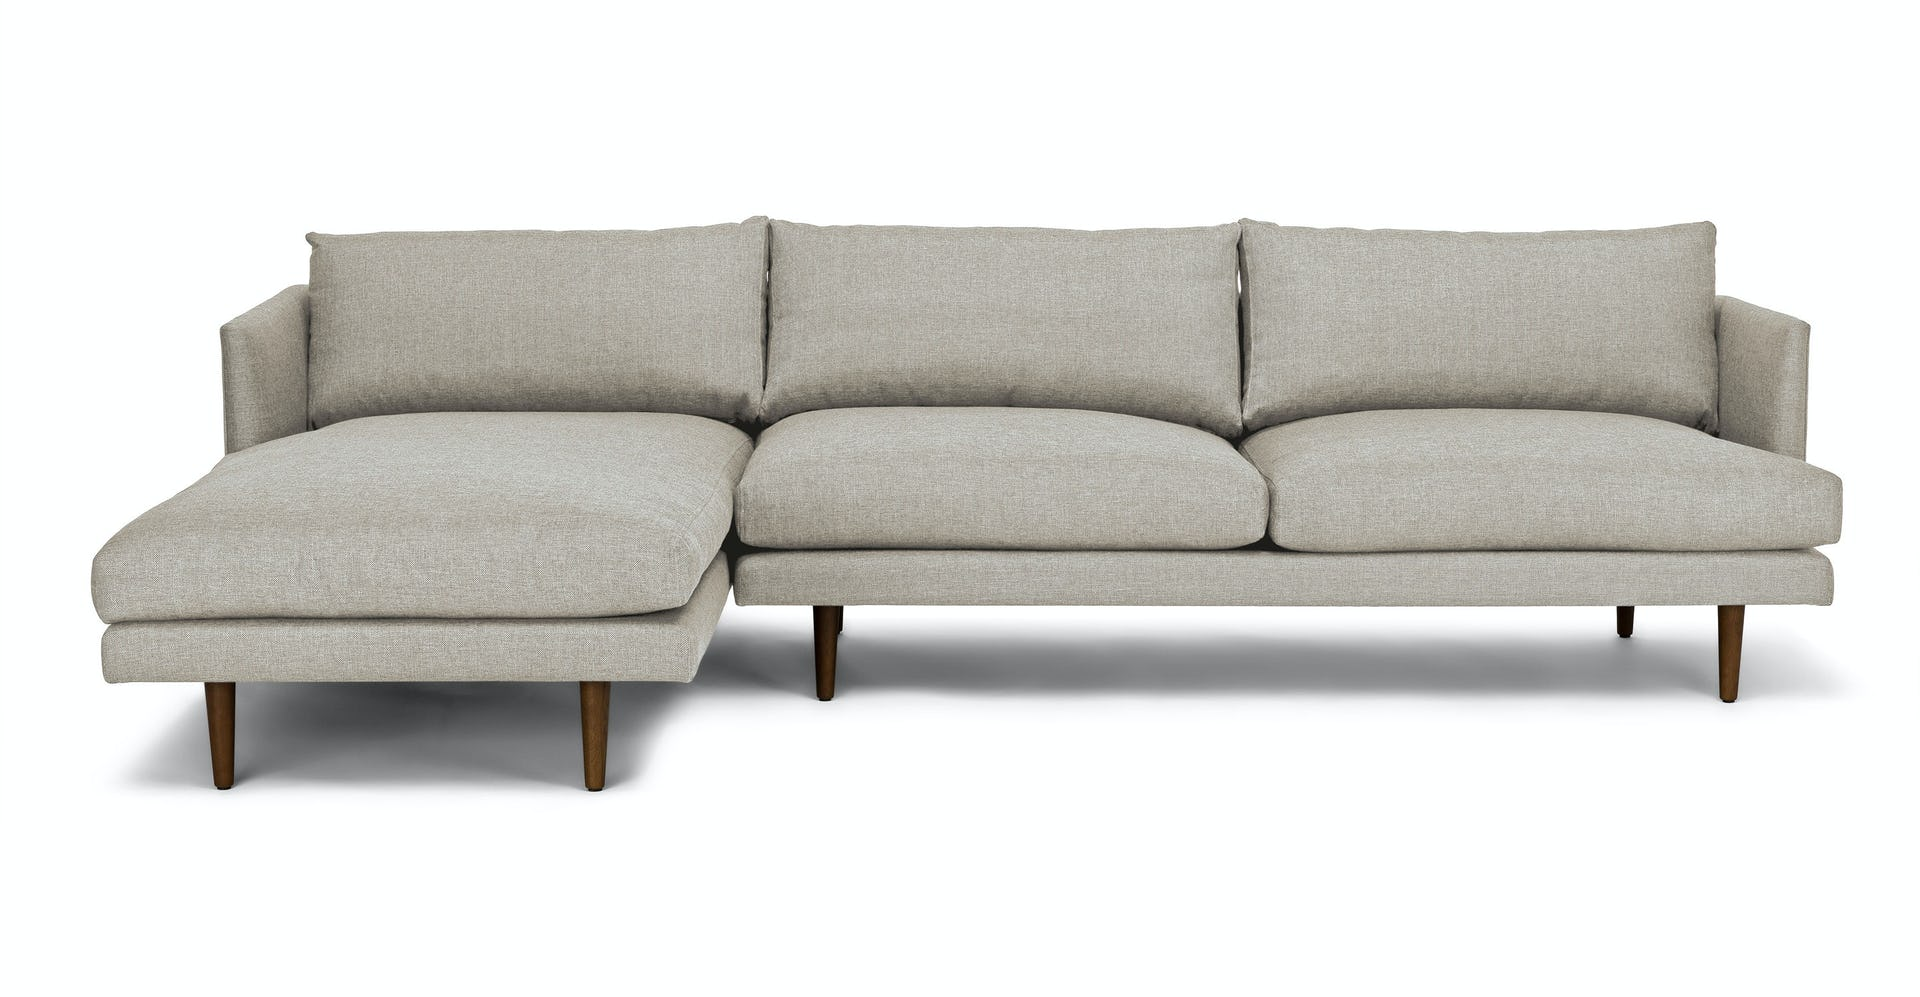 Swell Burrard Seasalt Gray Left Sectional Sofa Gmtry Best Dining Table And Chair Ideas Images Gmtryco